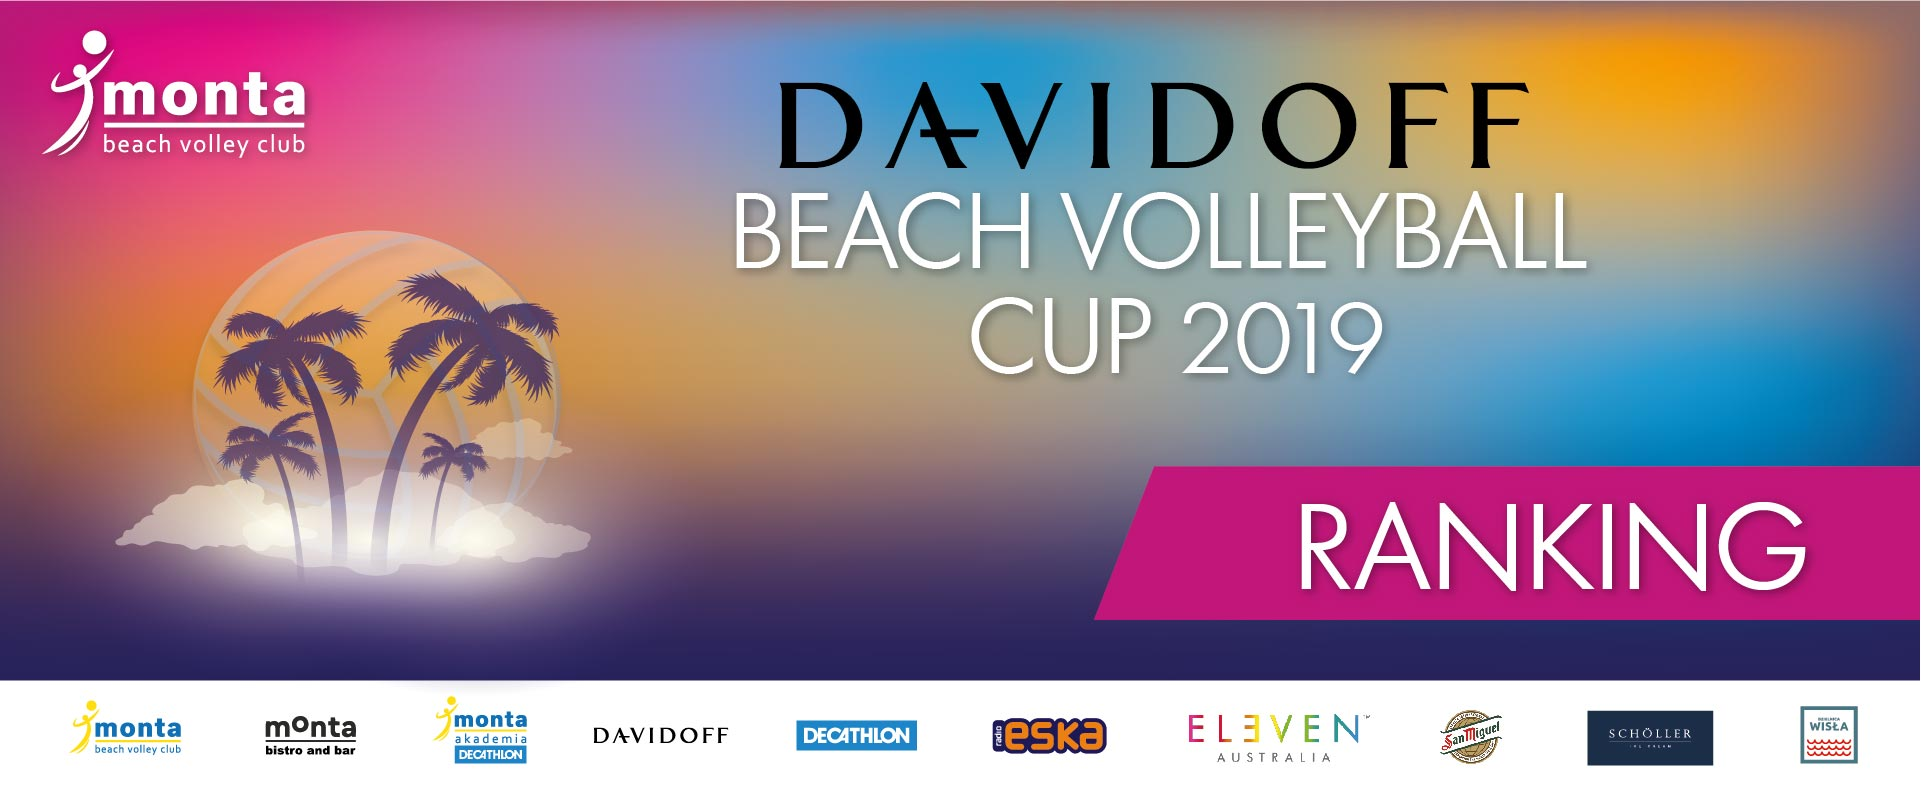 Aktualny ranking Davidoff Beach Volleyball Cup 2019